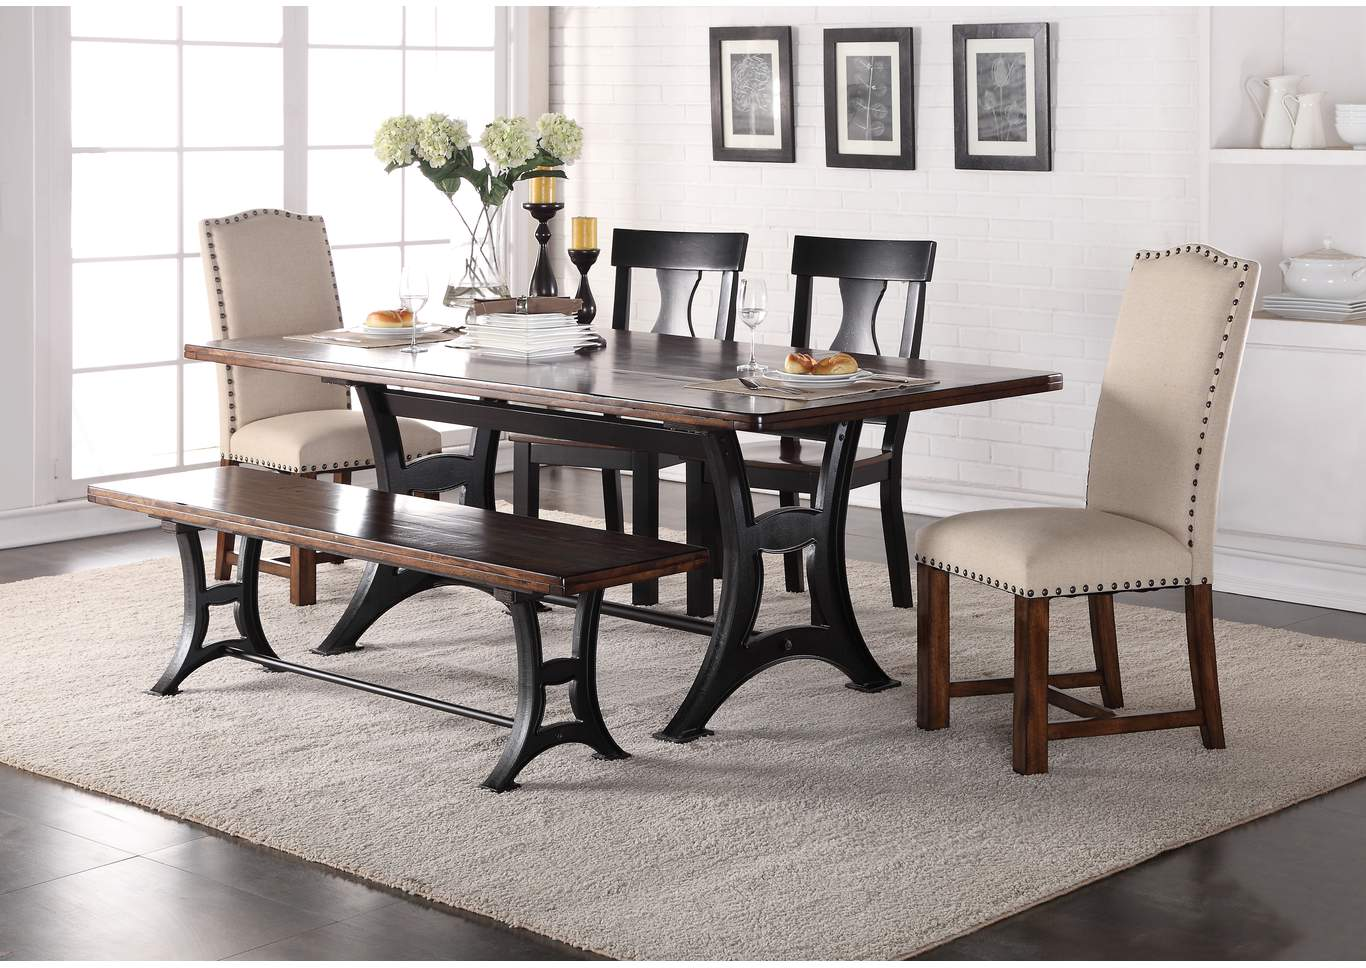 Astor Rectangular Dining Table W 2 Wood Upholstered Chairs Bench